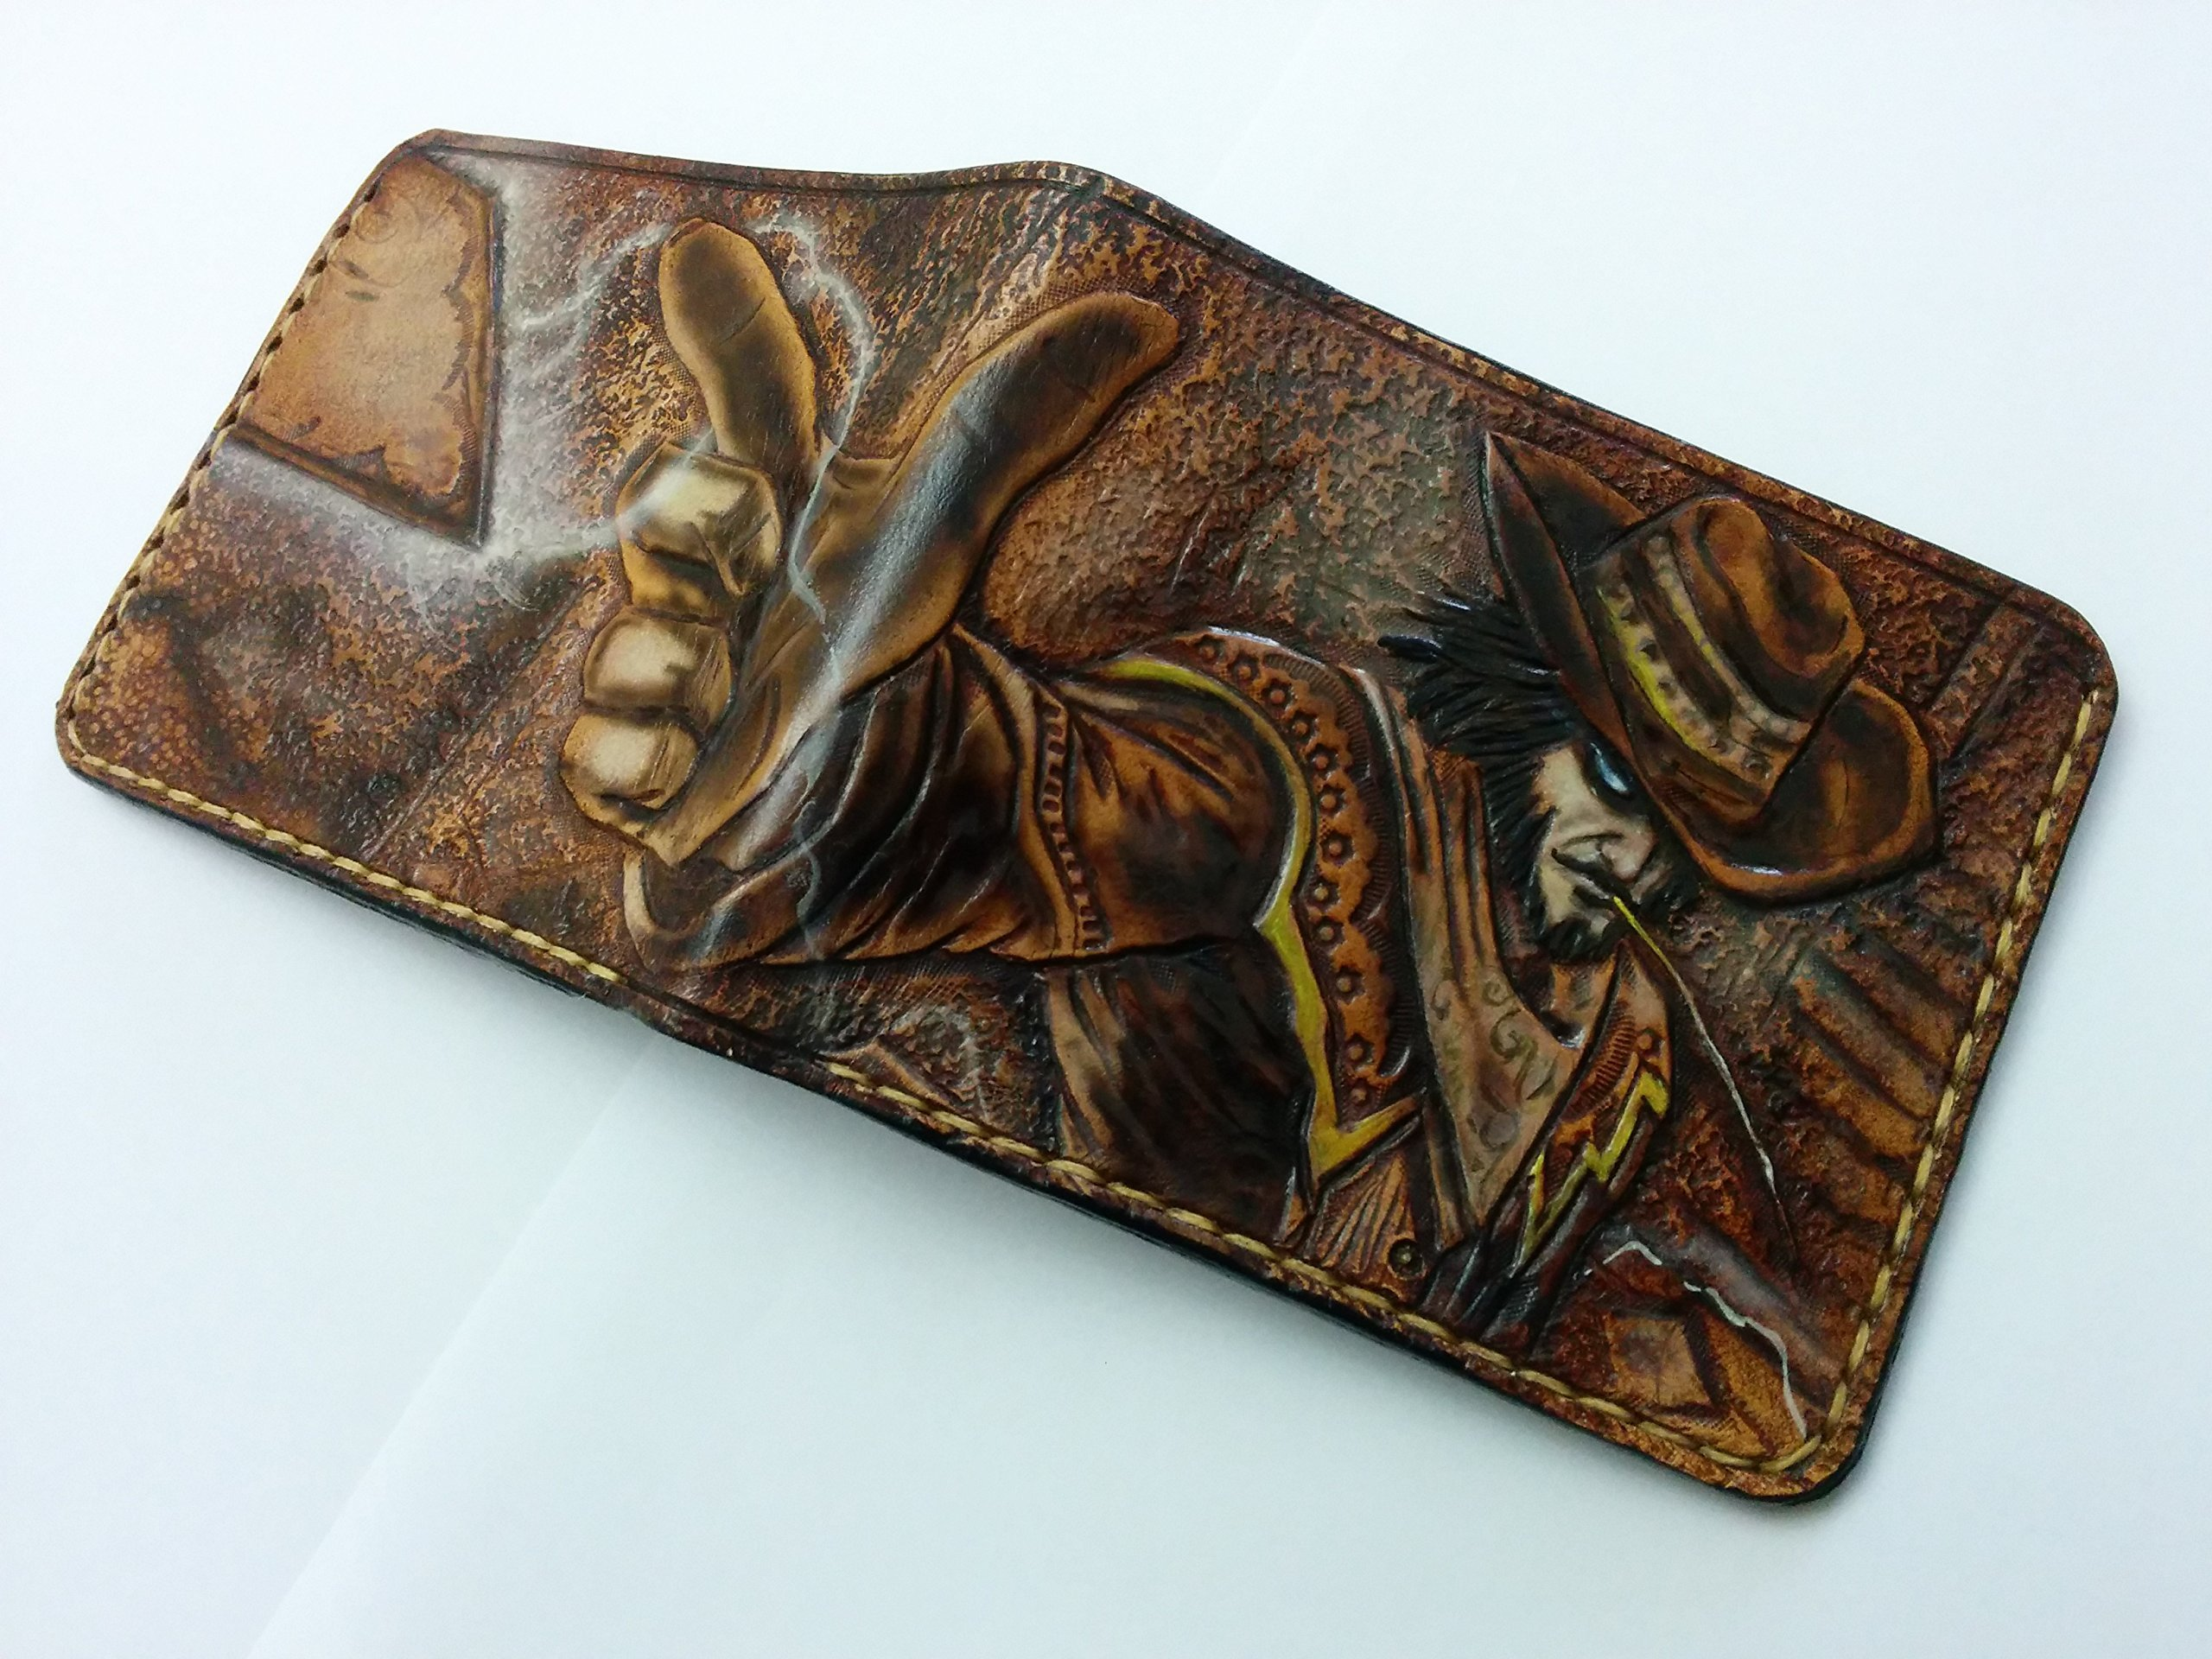 Men's 3D Genuine Leather Wallet, Hand-Carved, Hand-Painted, Leather Carving, Custom wallet, Personalized wallet, League of Legends, Twisted Fate, Cowboy